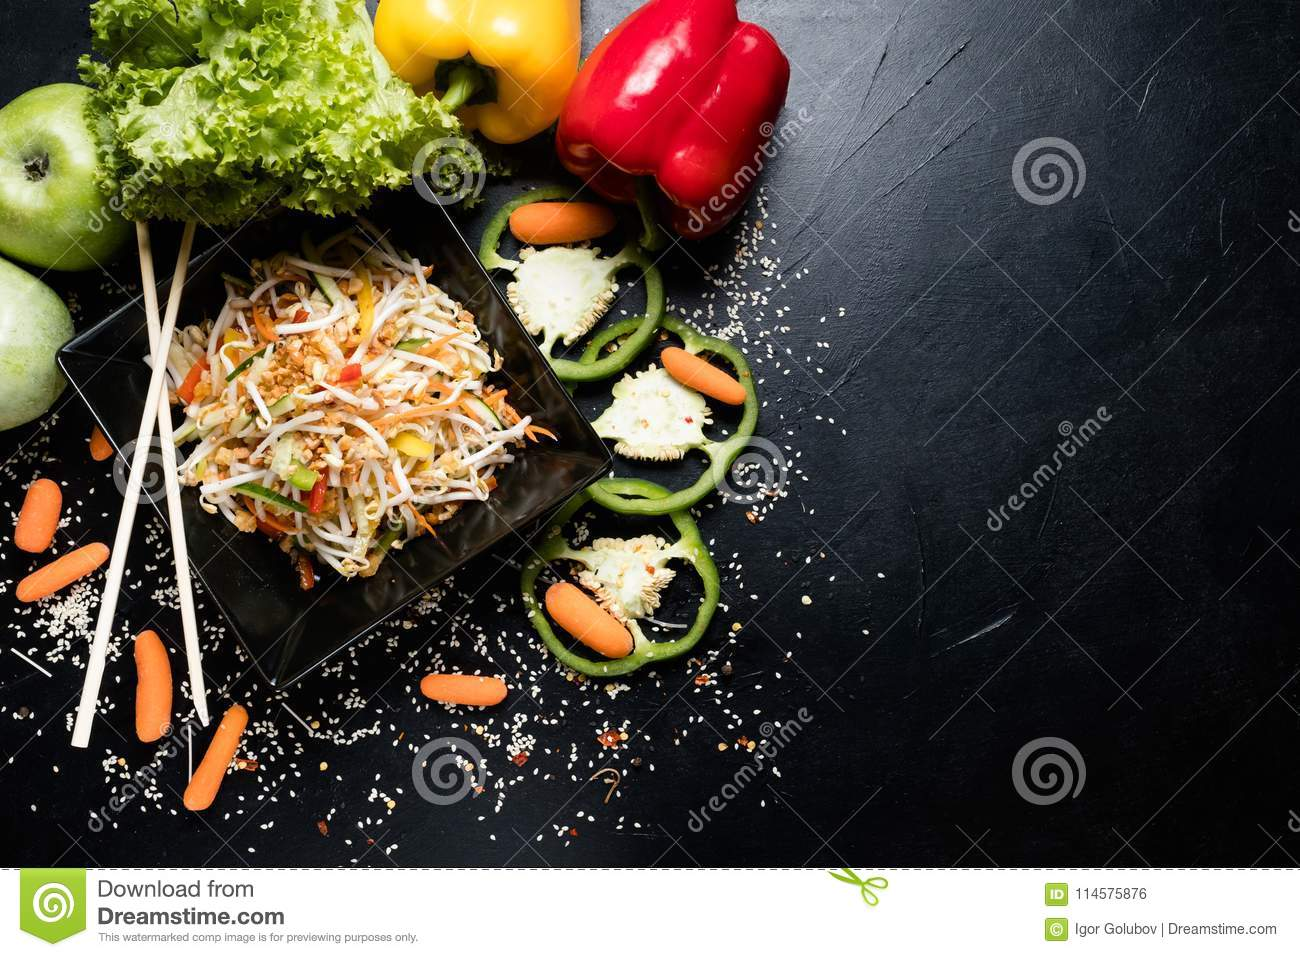 Recipe meal vietnamese cuisine wheat sprout veggie stock photo download comp forumfinder Images